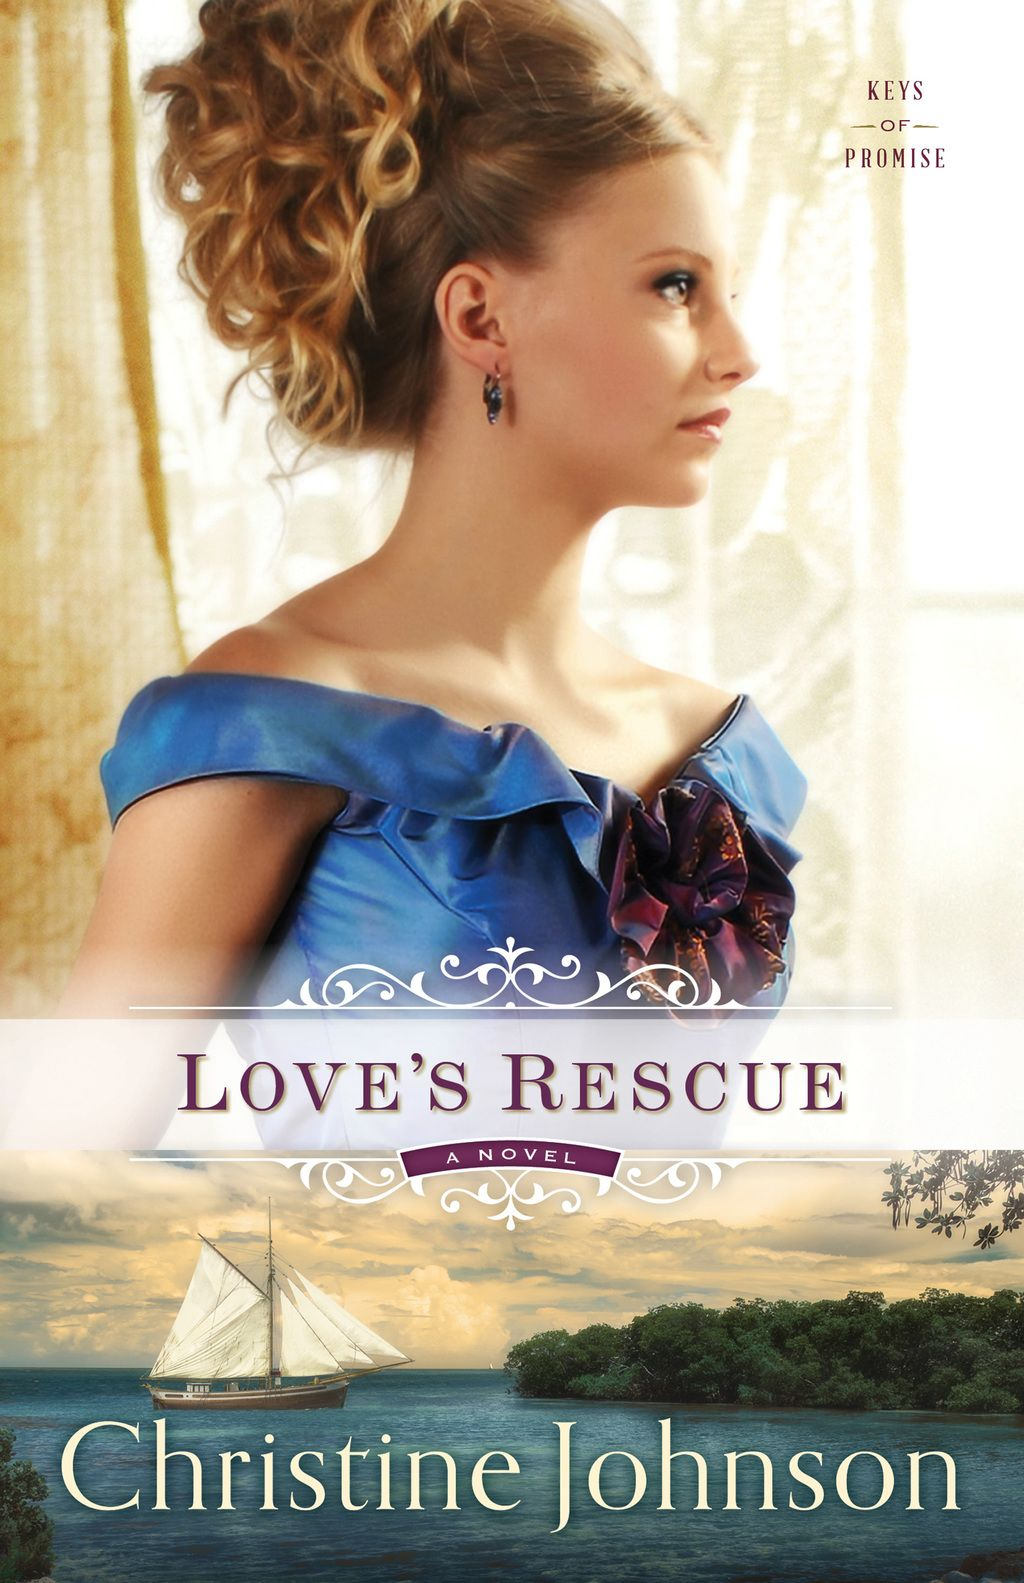 Love's Rescue (eBook) Christian fiction, Book giveaways